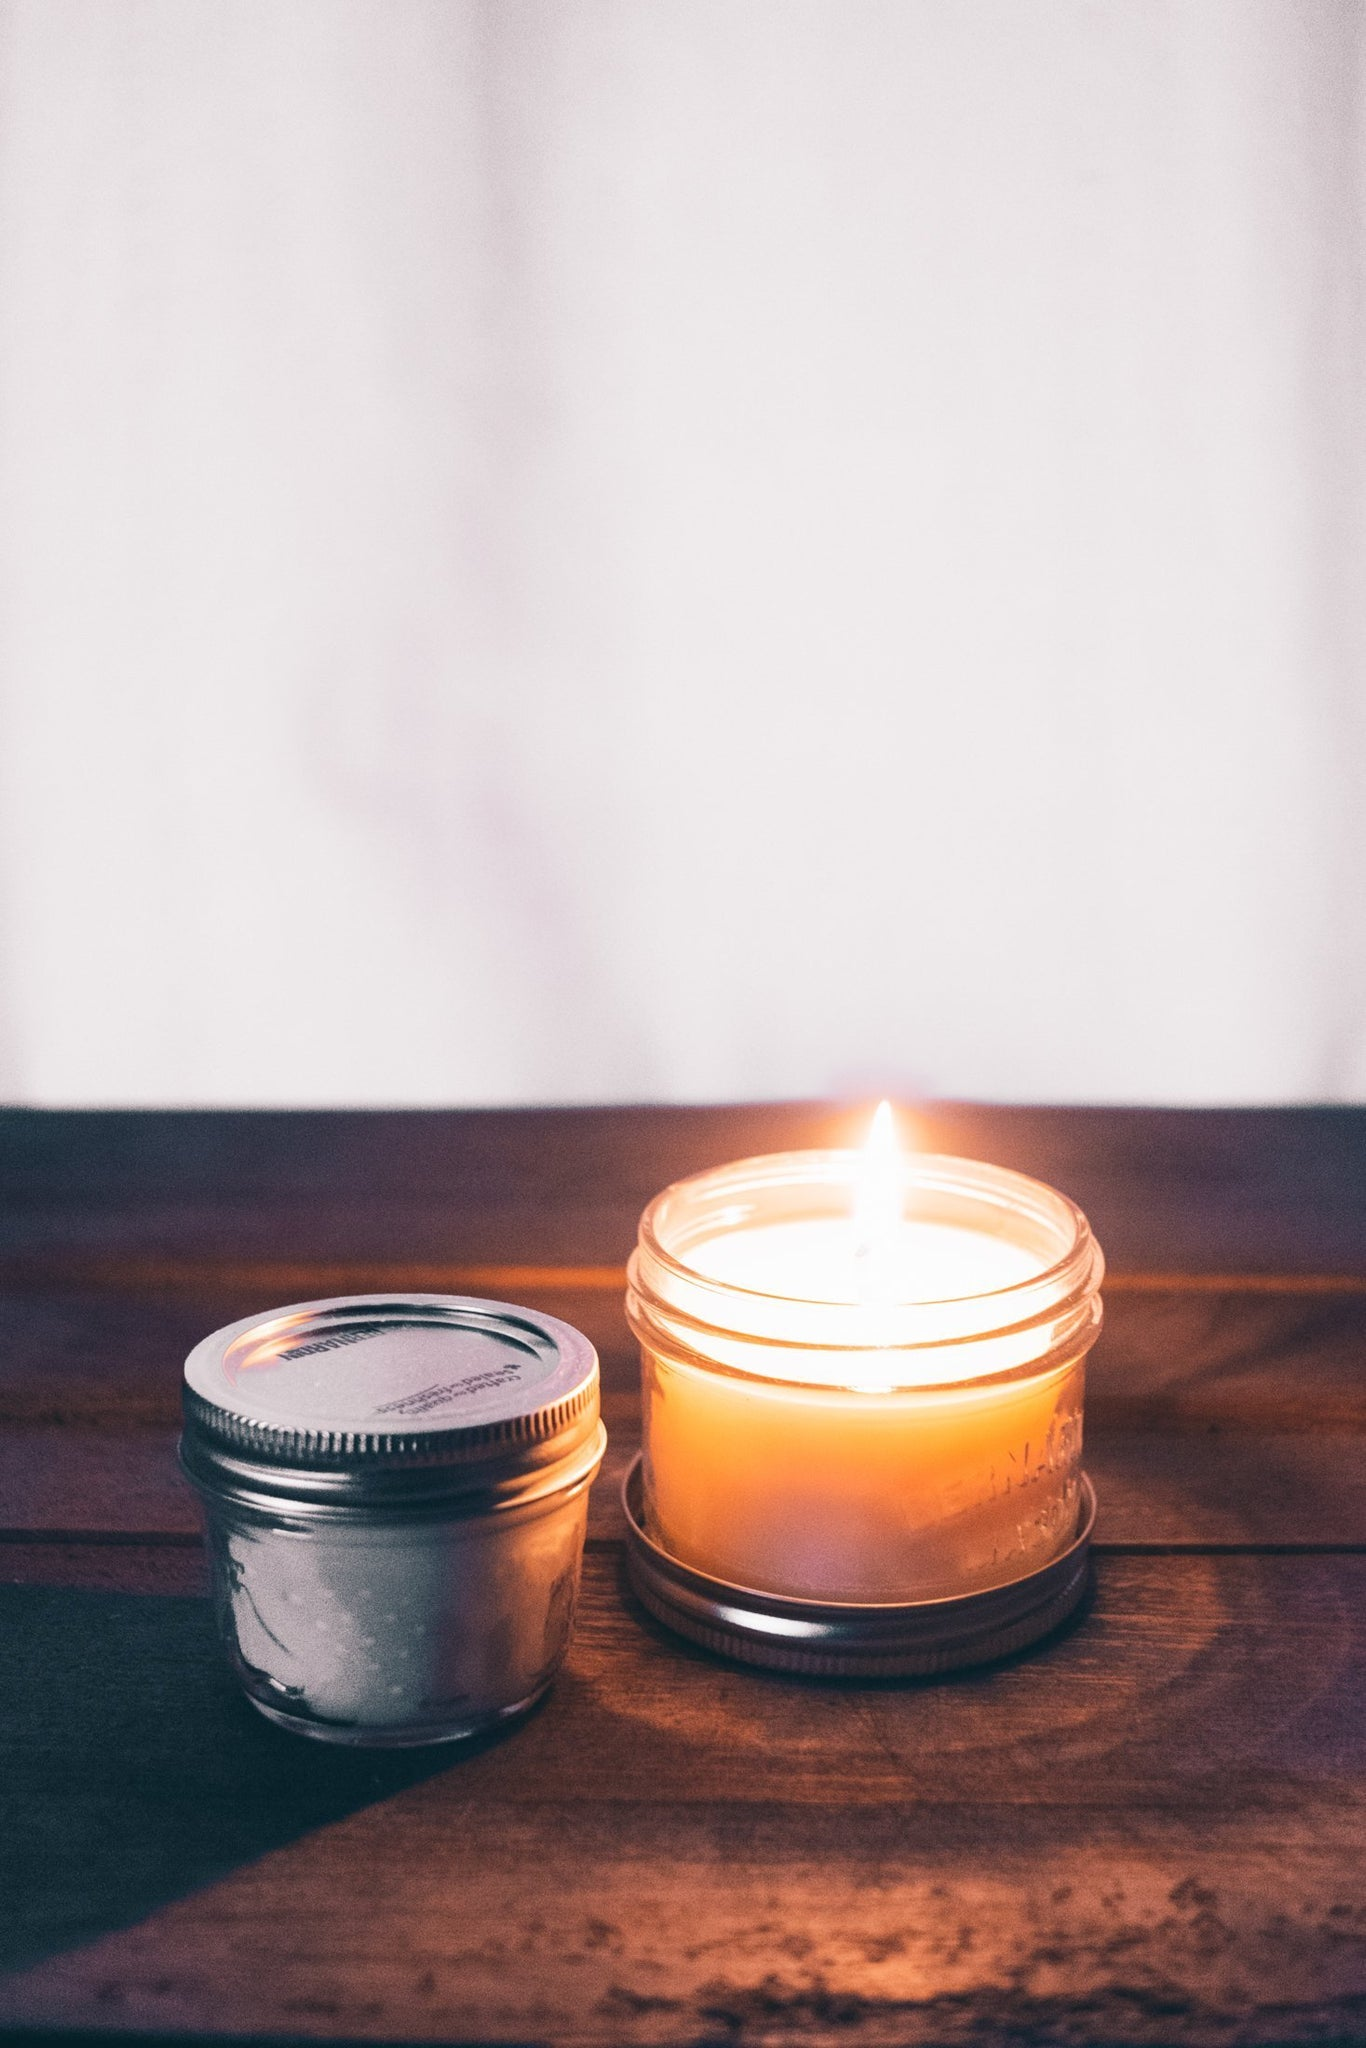 What Every Candle Burner Should Know About Candle Soot